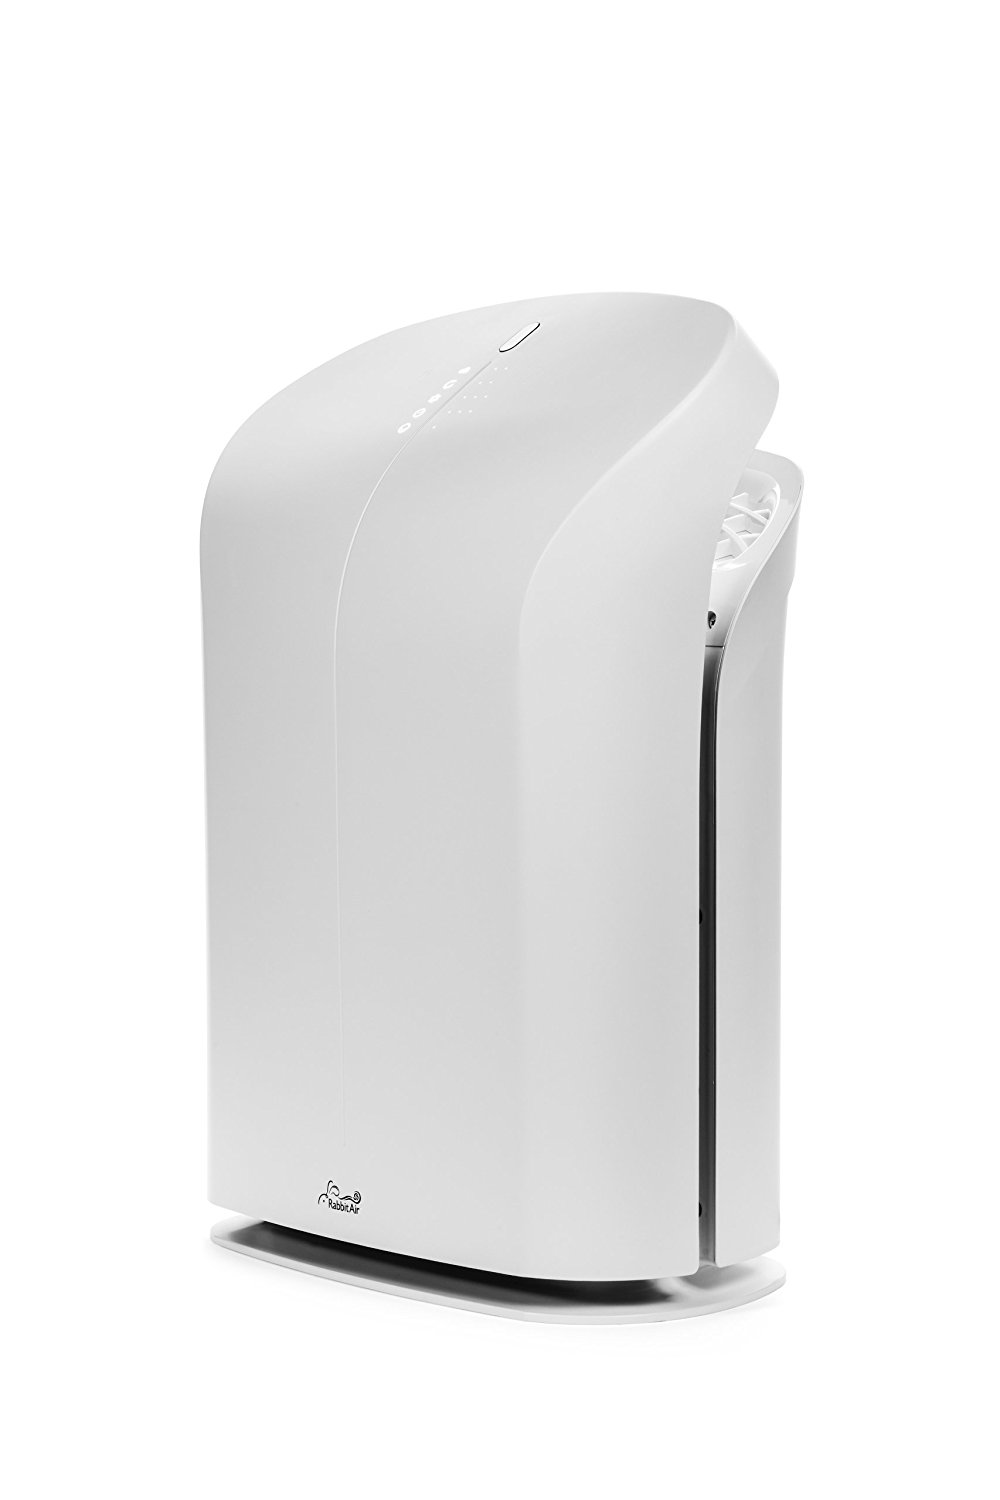 Review of Rabbit Air BioGS 2.0 Ultra Quiet HEPA Air Purifier (SPA-550A)